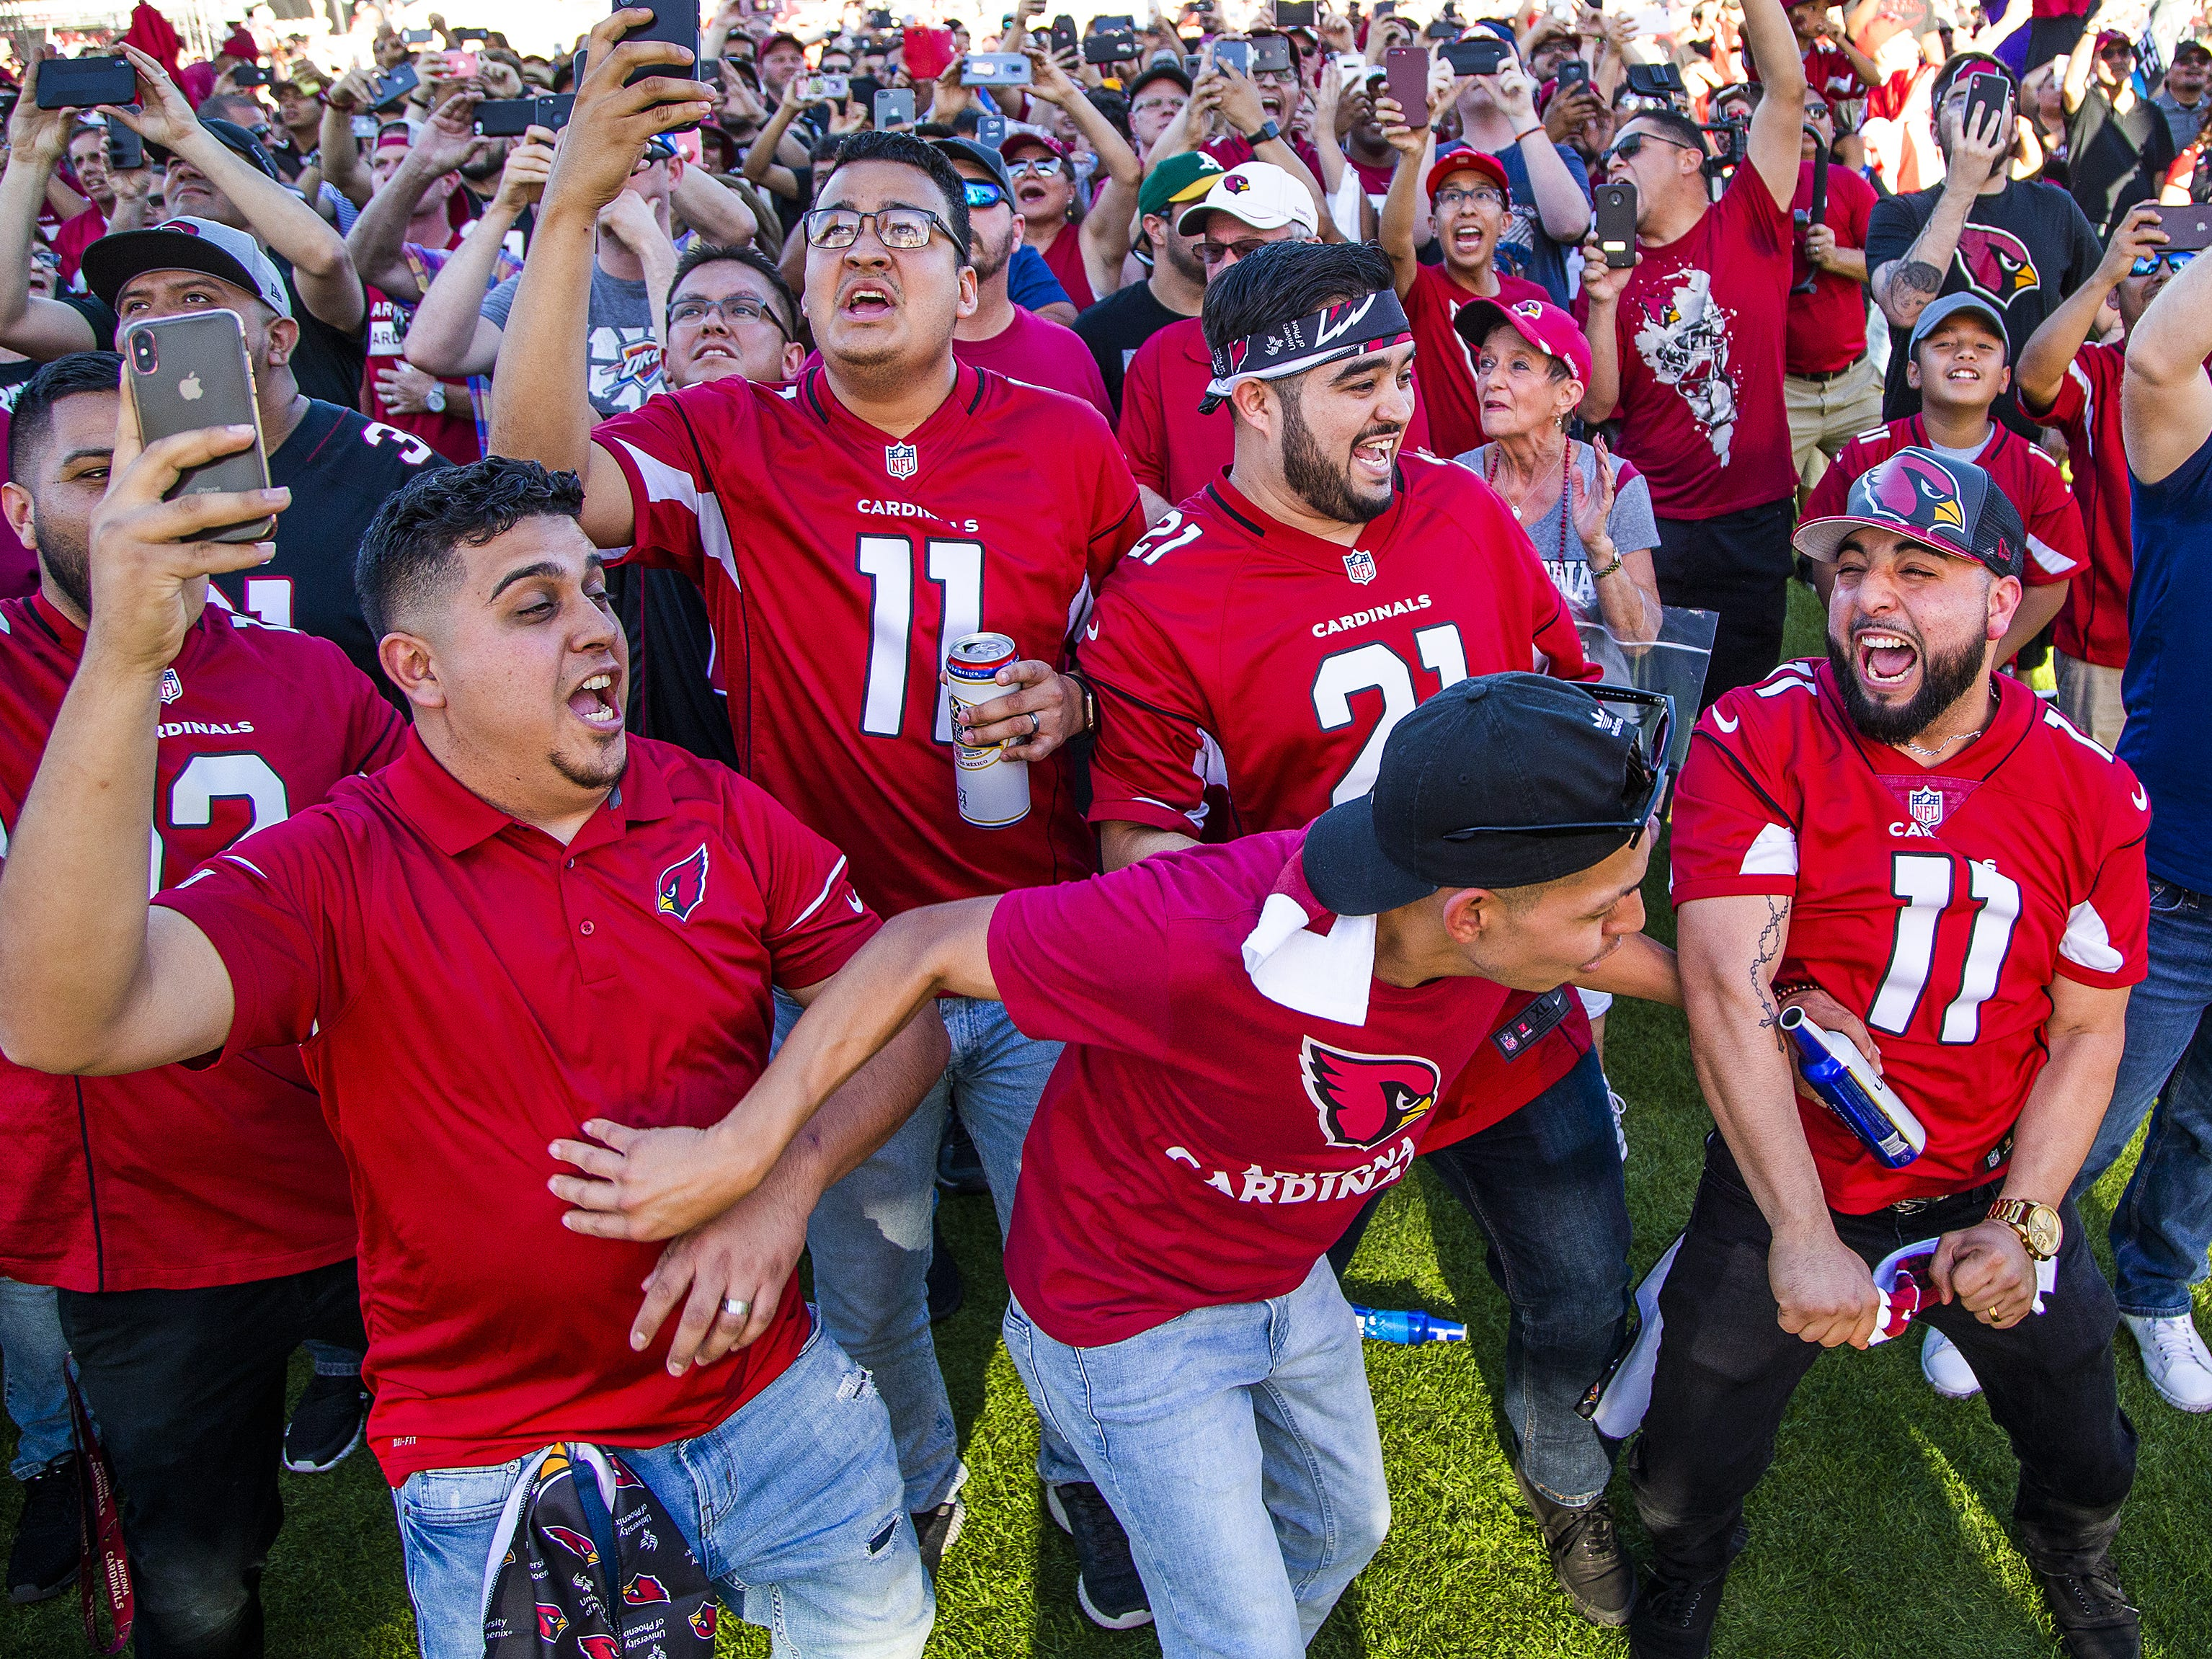 Sergio Rogel, left, Efren Hernandez, Javier Salas, Jesus Cano, and Jesus Quezada, cheer as the Arizona Cardinals make their first pick in the NFL Draft. The fans watched a live feed during a draft party on the Great Lawn outside State Farm Stadium, Thursday, April 25, 2019.